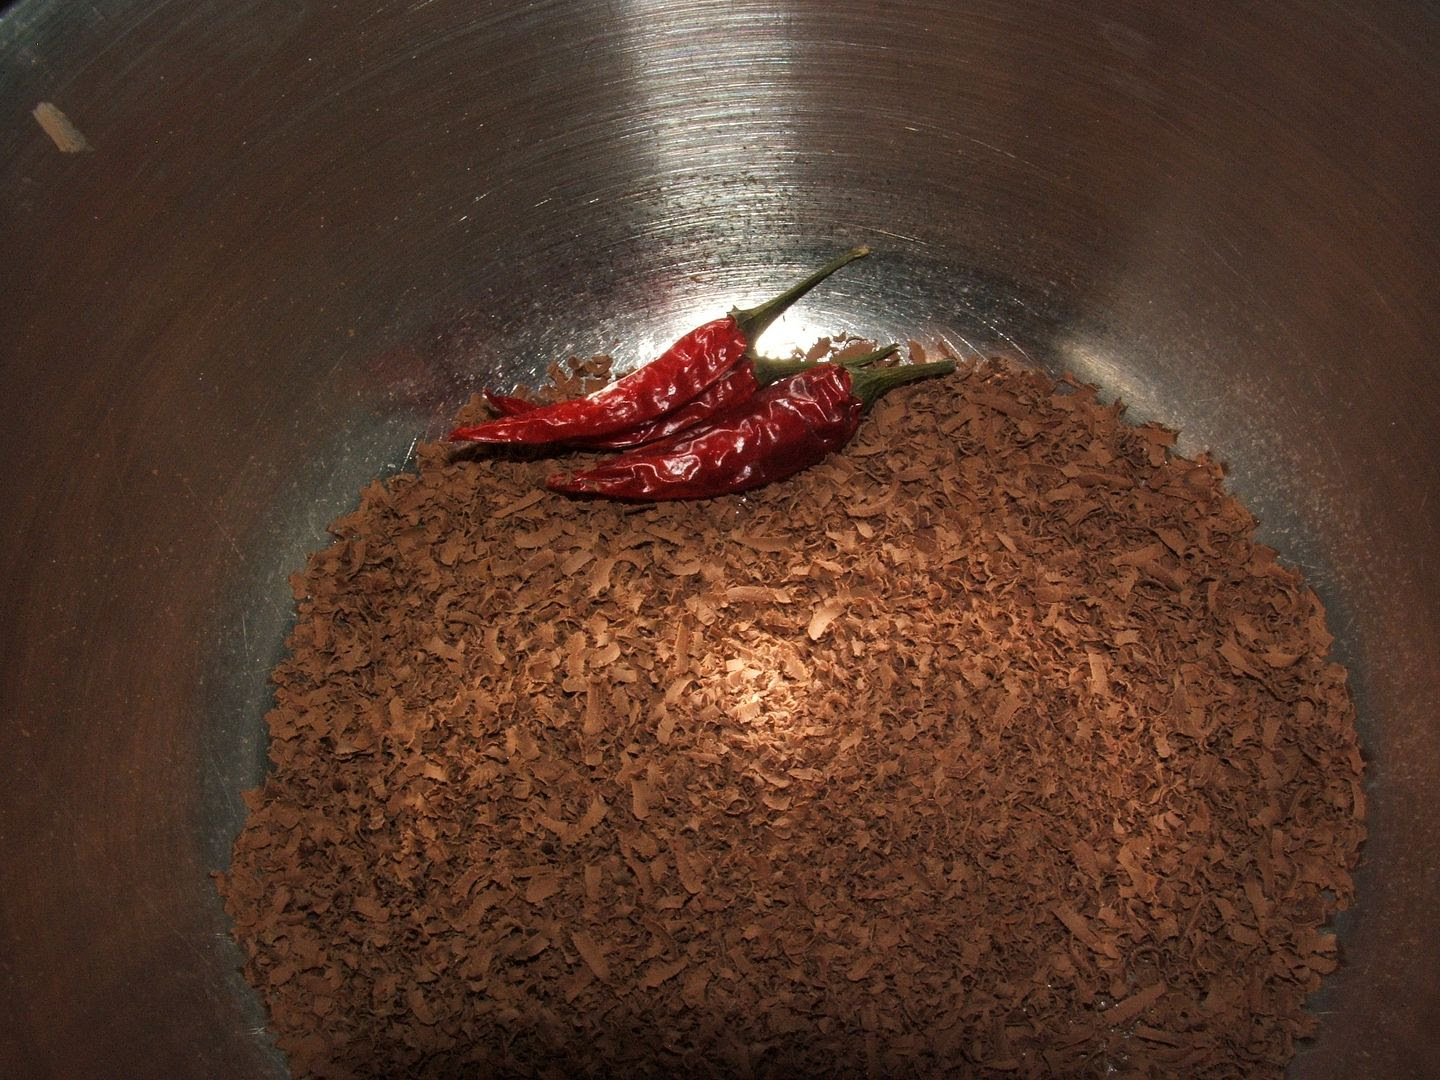 Chili Pepper Chocolate Creme Brulee by Angie Ouellette-Tower photo 001_zps6c88386b.jpg